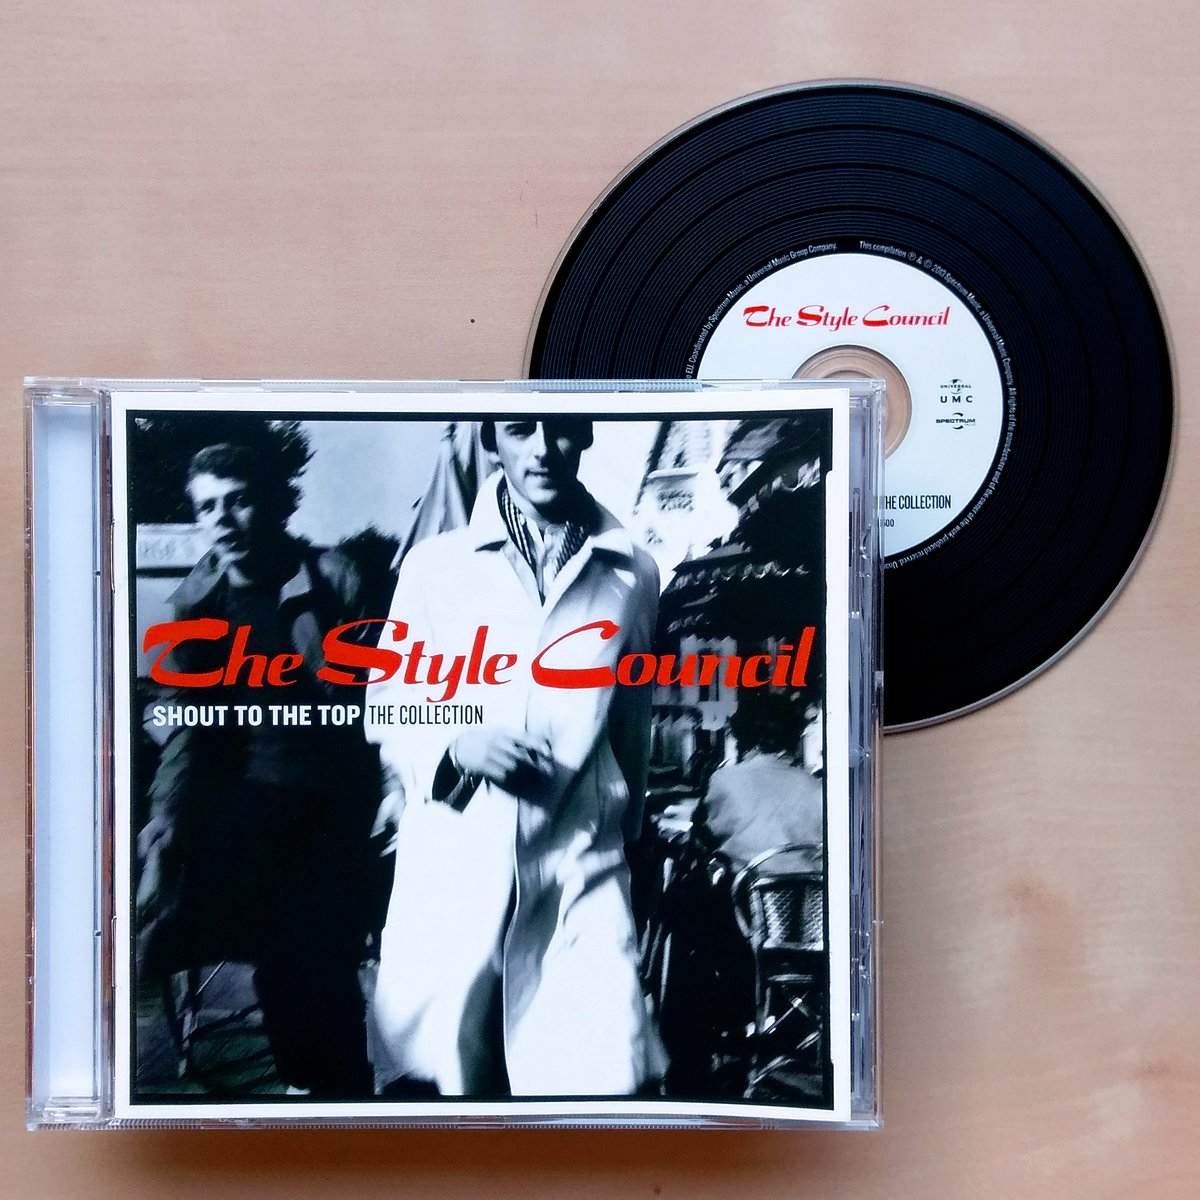 The Style Council – Shout To The Top (The Collection). CD Compilation going to Valencia, Ca. #TheStyleCouncil #ShoutToTheTop #MyEverChangingMoods #YoureTheBestThing #RockMusic #PopMusic #SoulMusic #CDCollector #CDCollectorsOfTwitterpic.twitter.com/xaZtEzVa7i